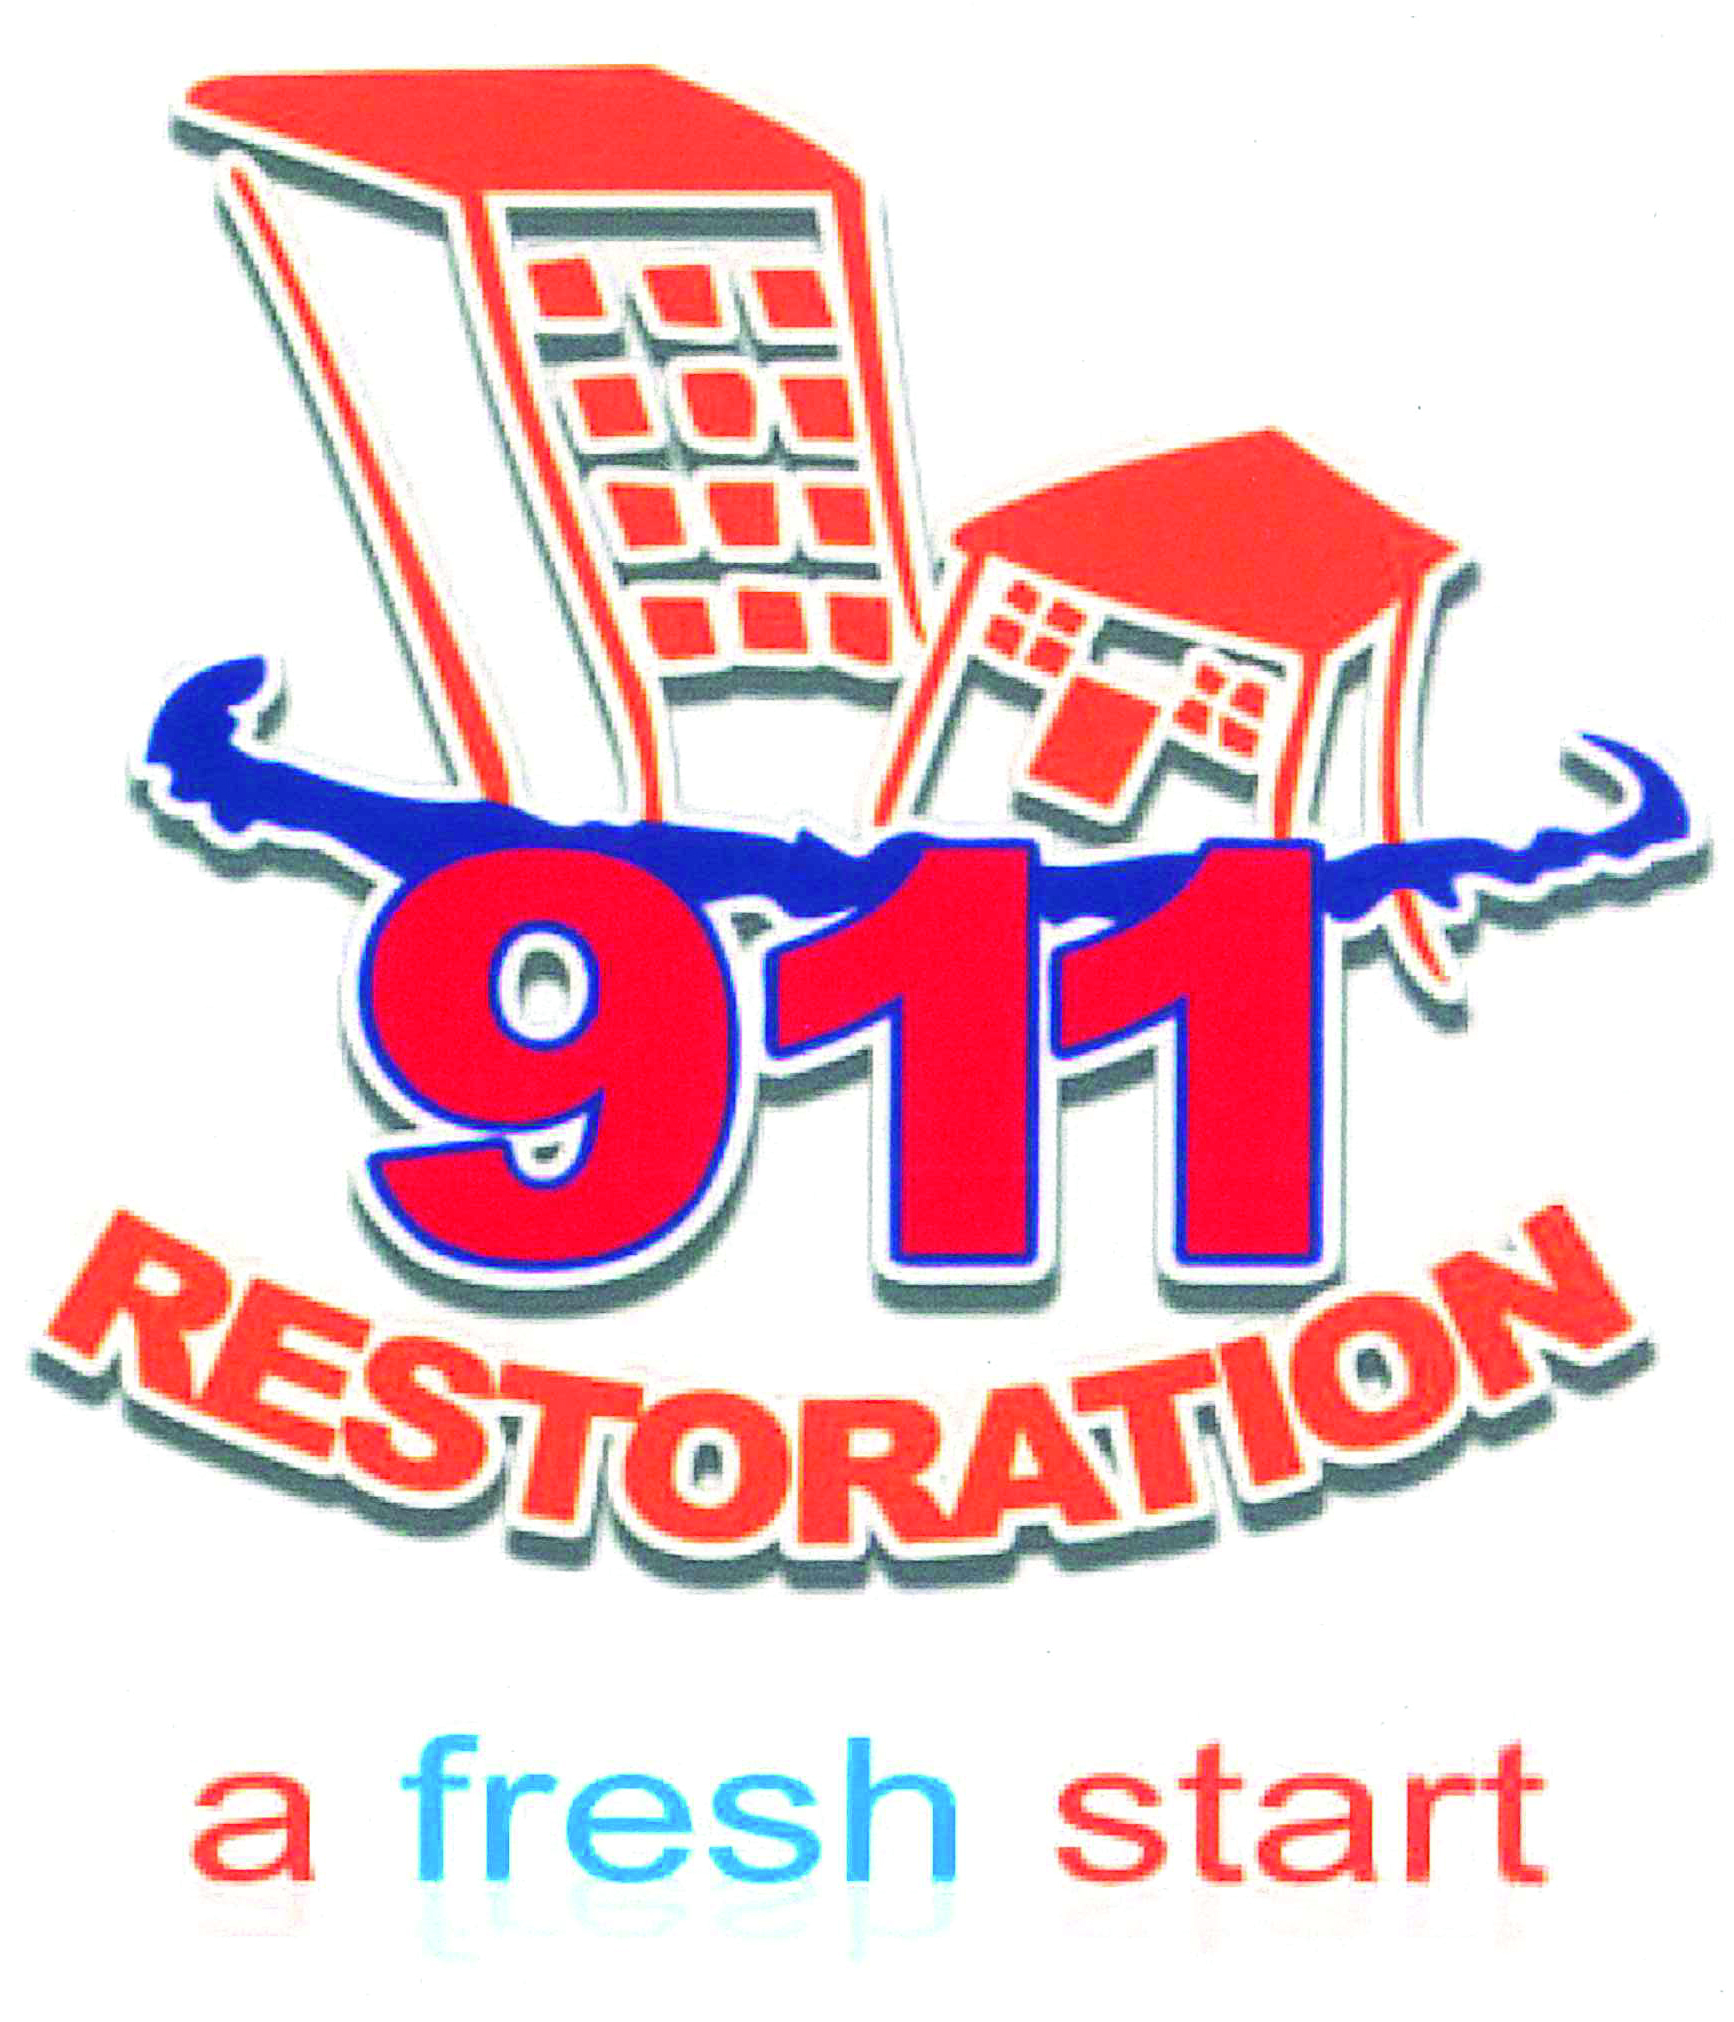 911 Restoration of Durham